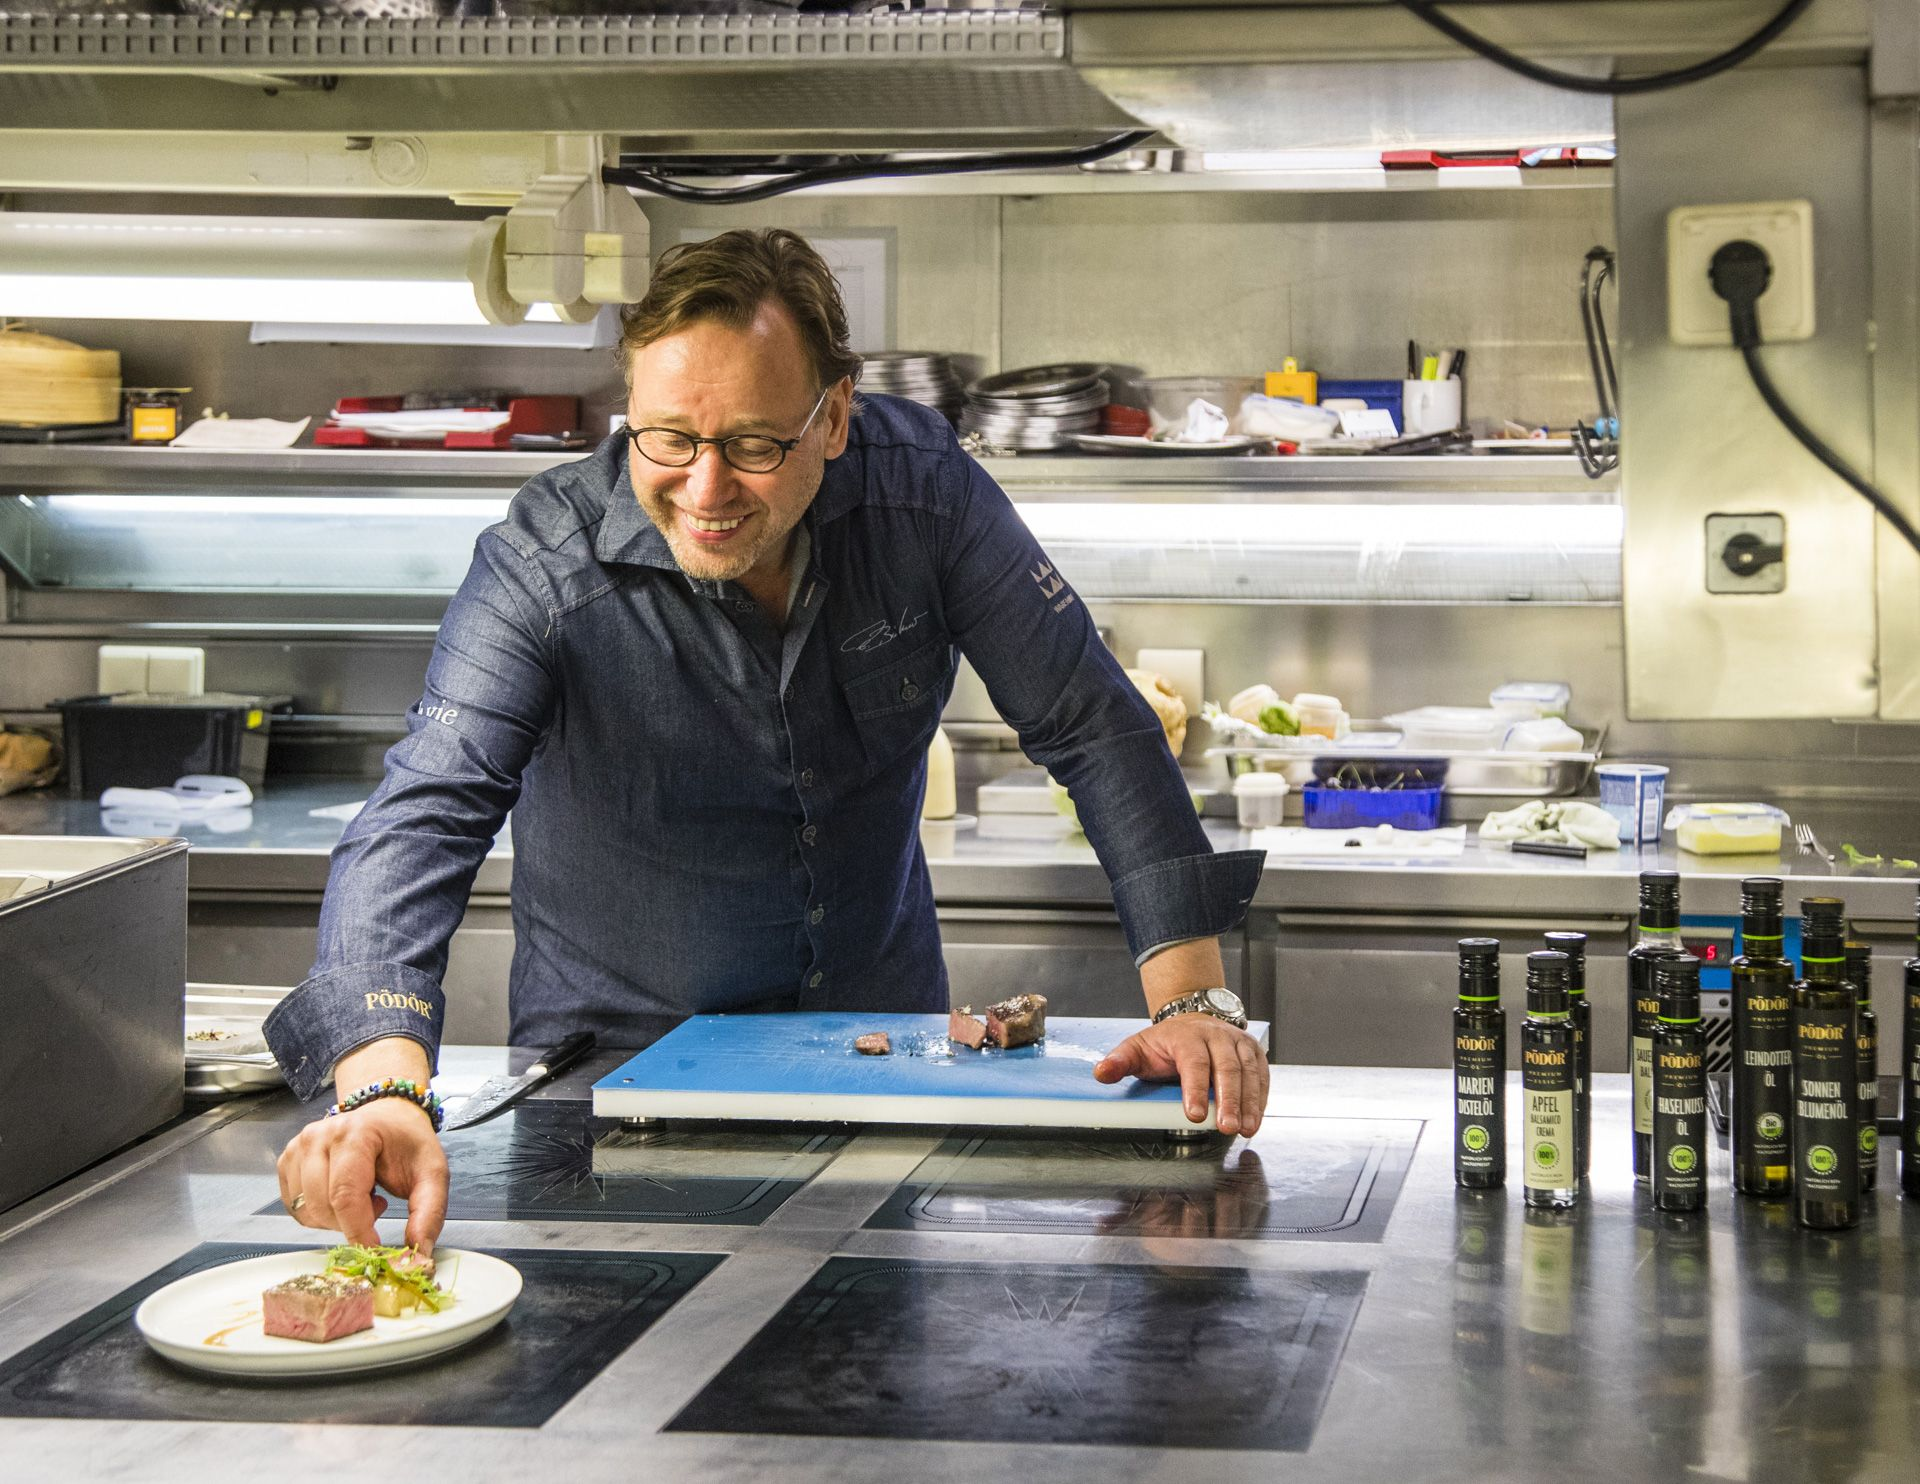 Cooking is fun: Thomas Bühner appreciates the variety of Pödör oils and vinegars.